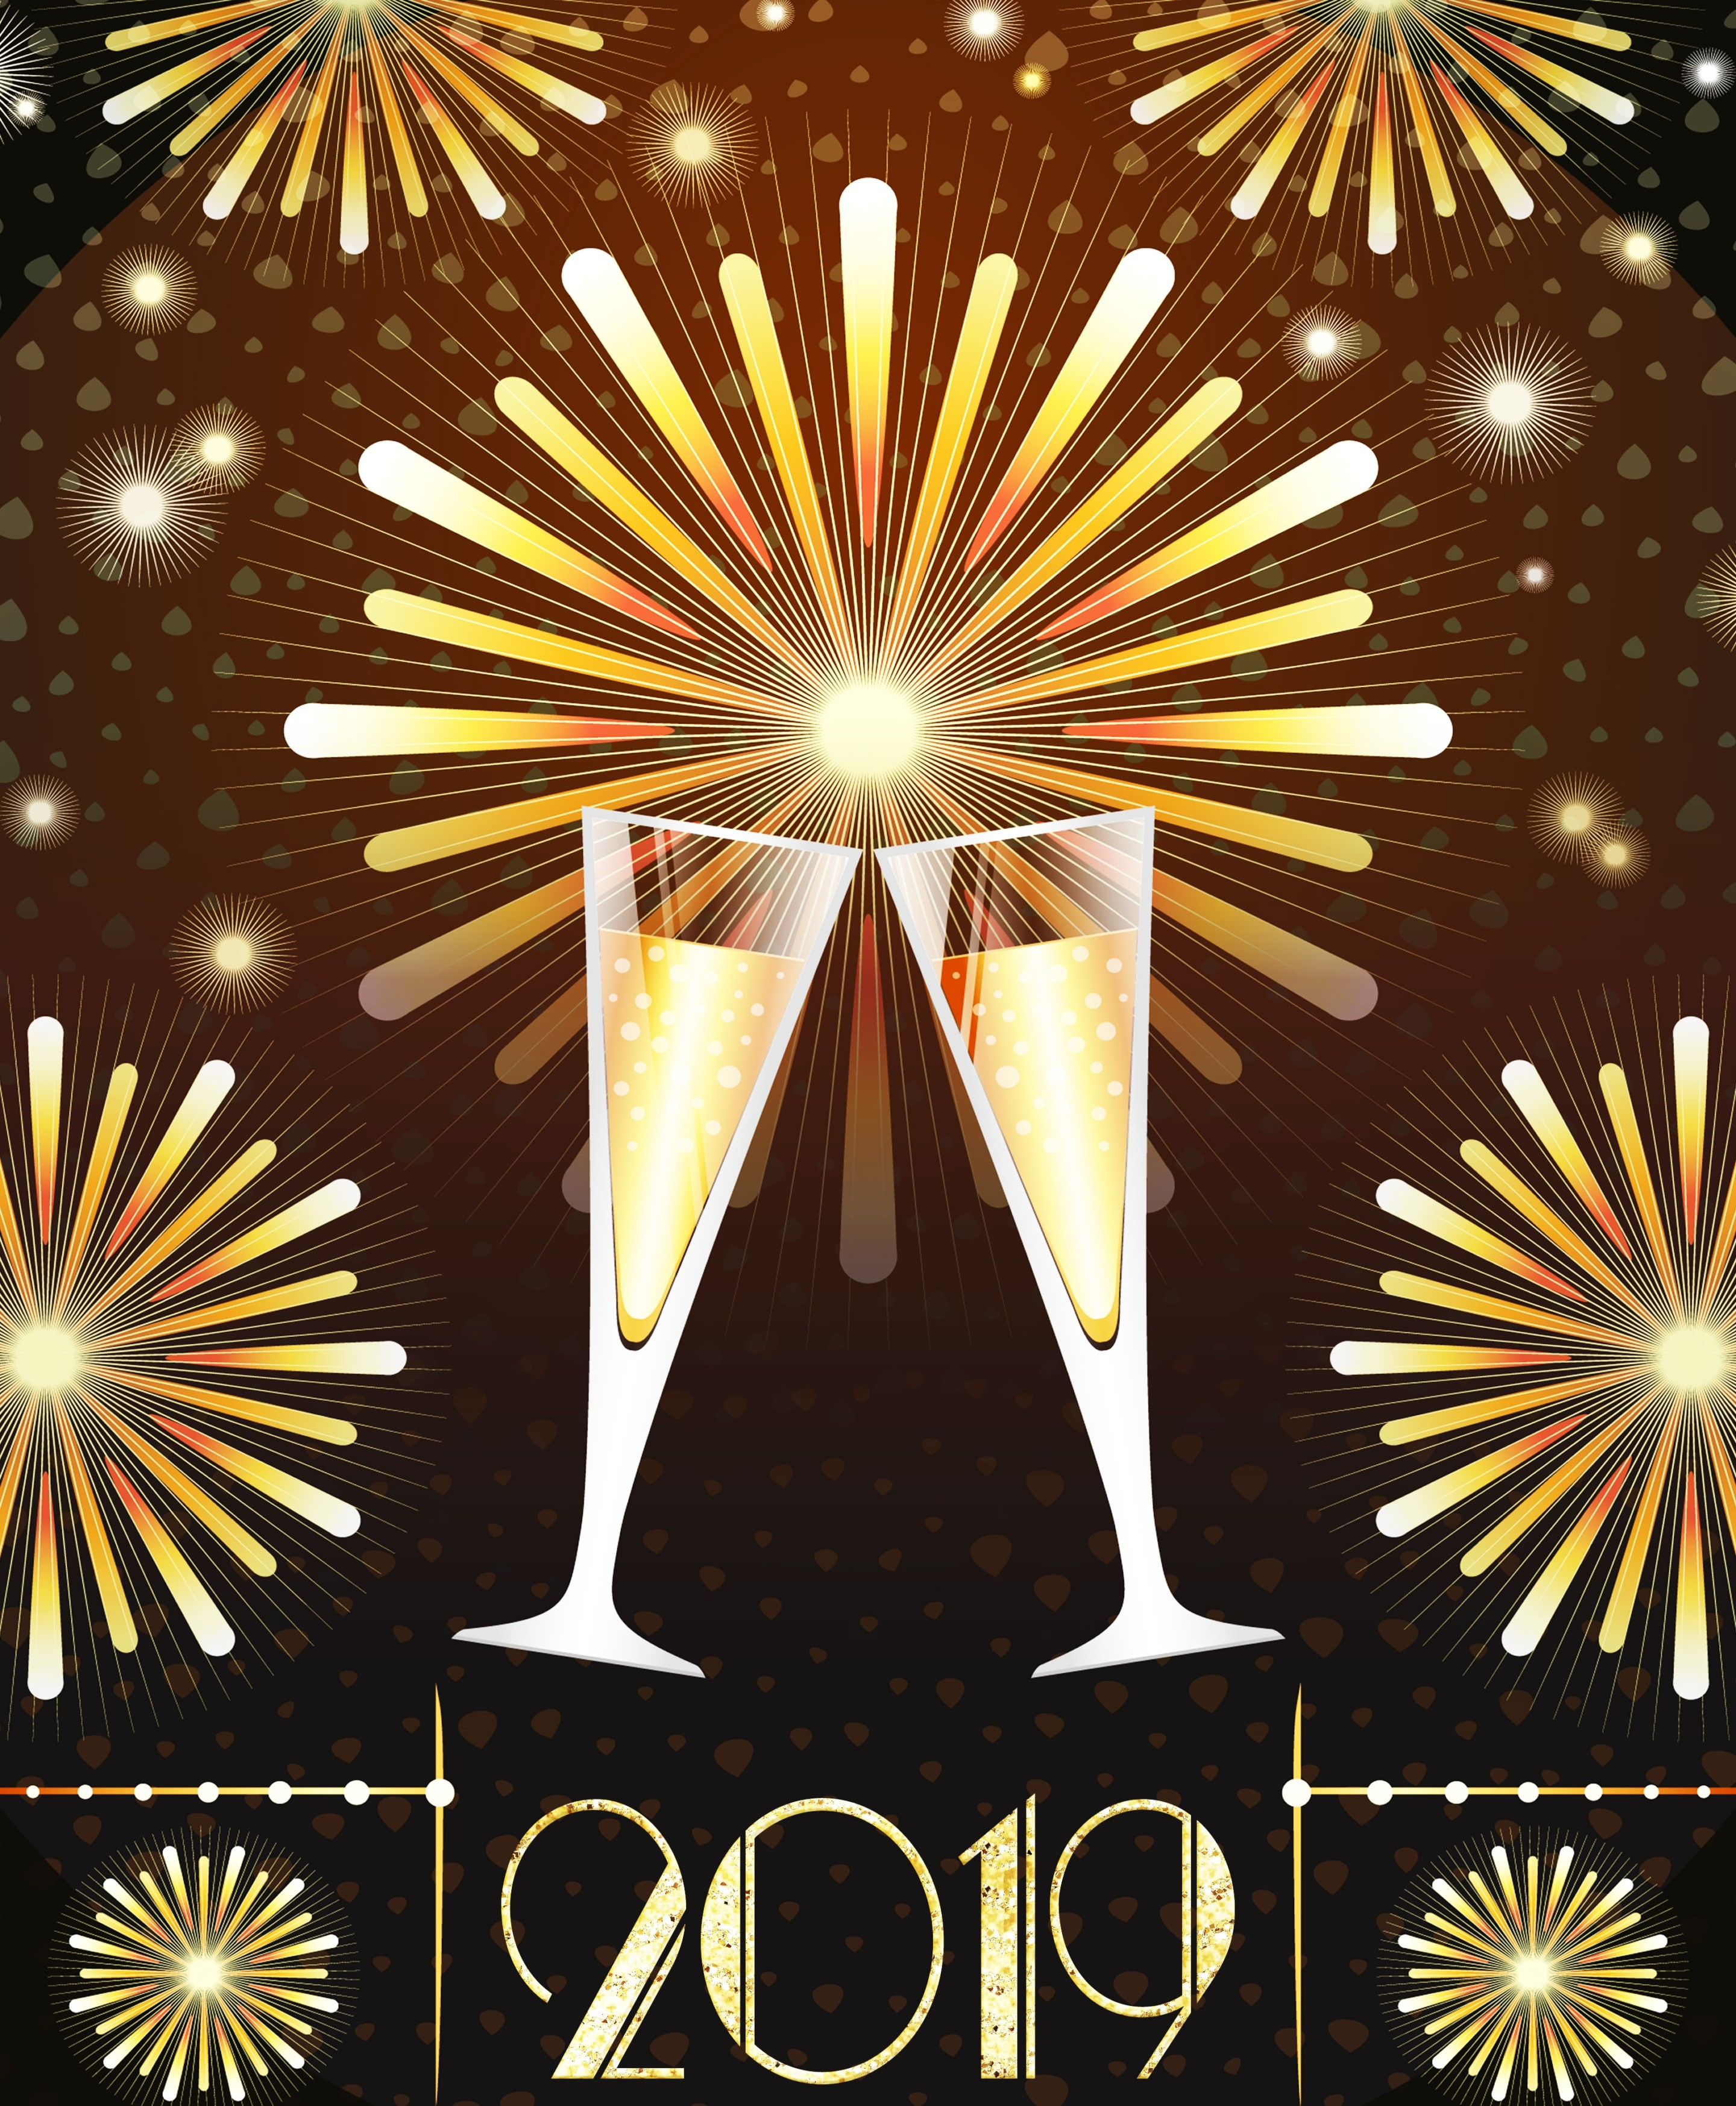 toast to 2019 and ring in the new year with a bang at the new years eve stardust party in the grand ballroom choose from two overnight party packages